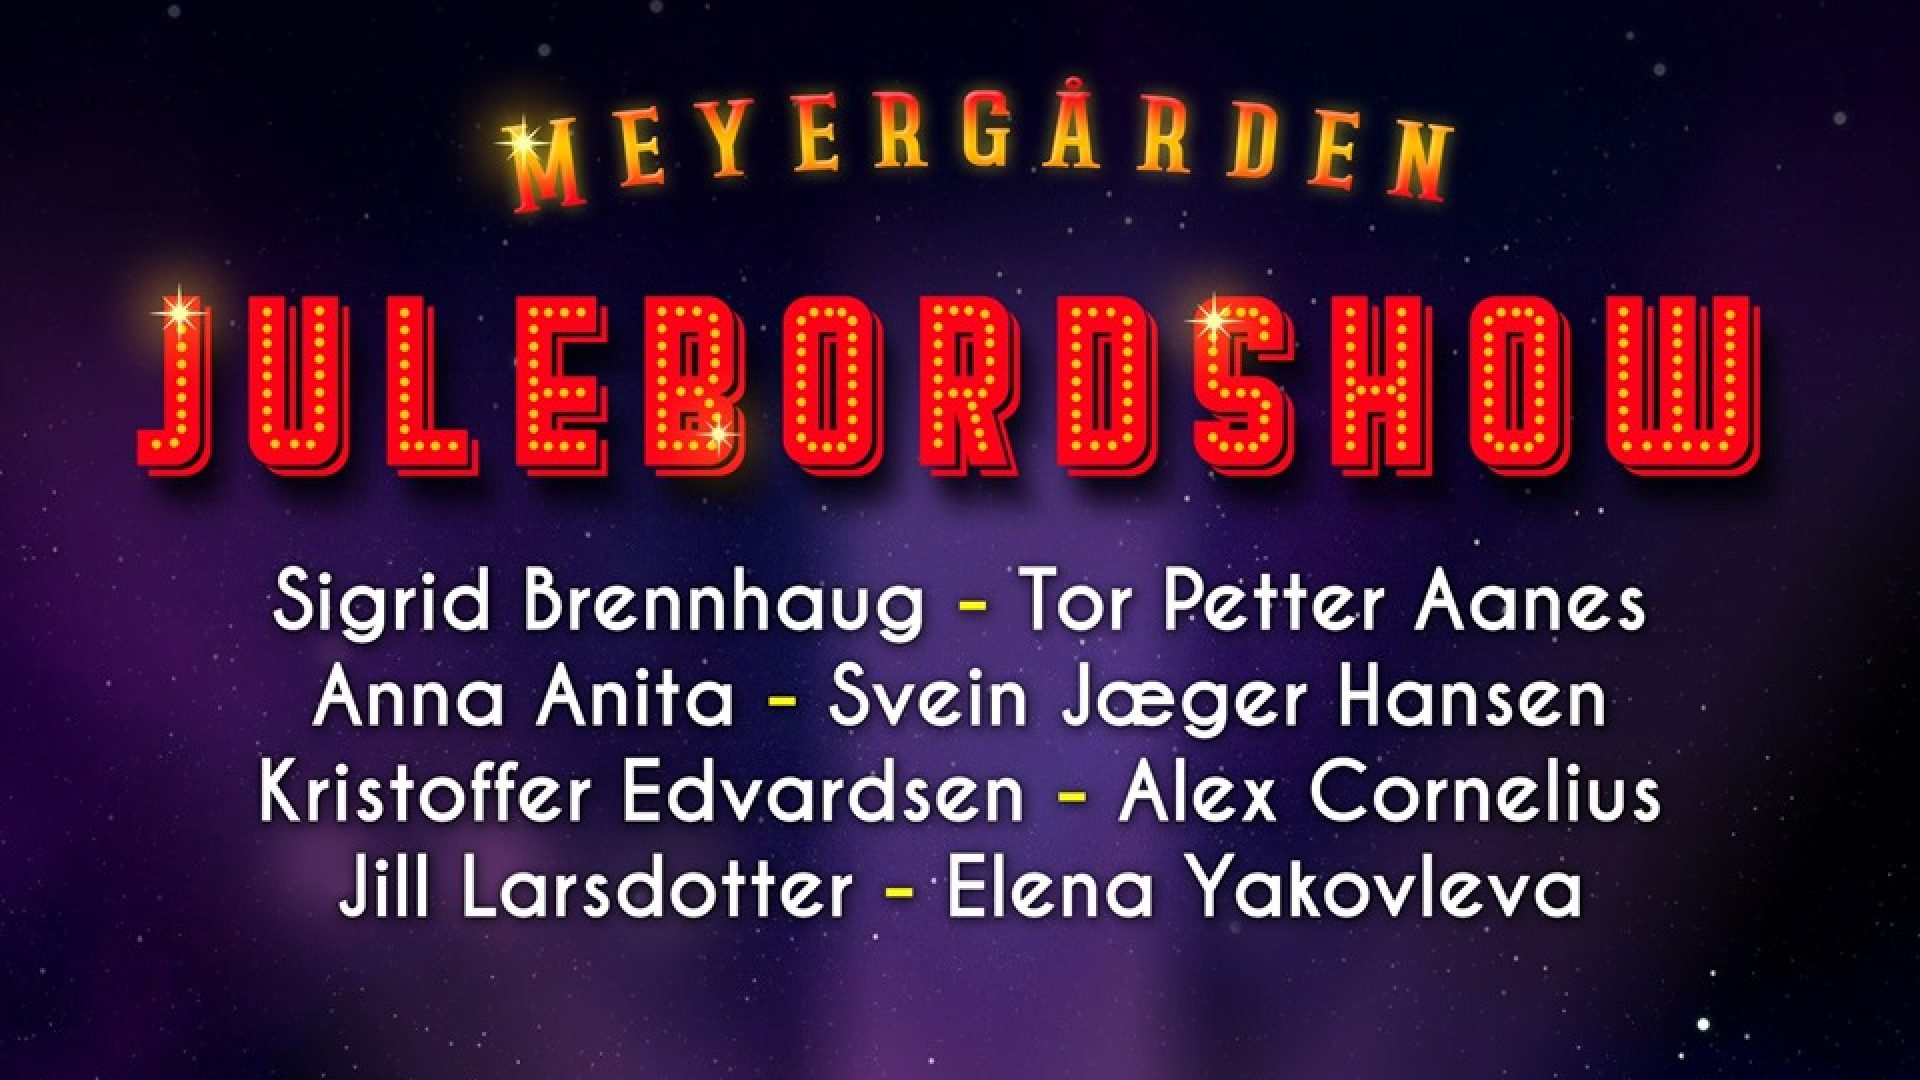 Plakat for julebordshow